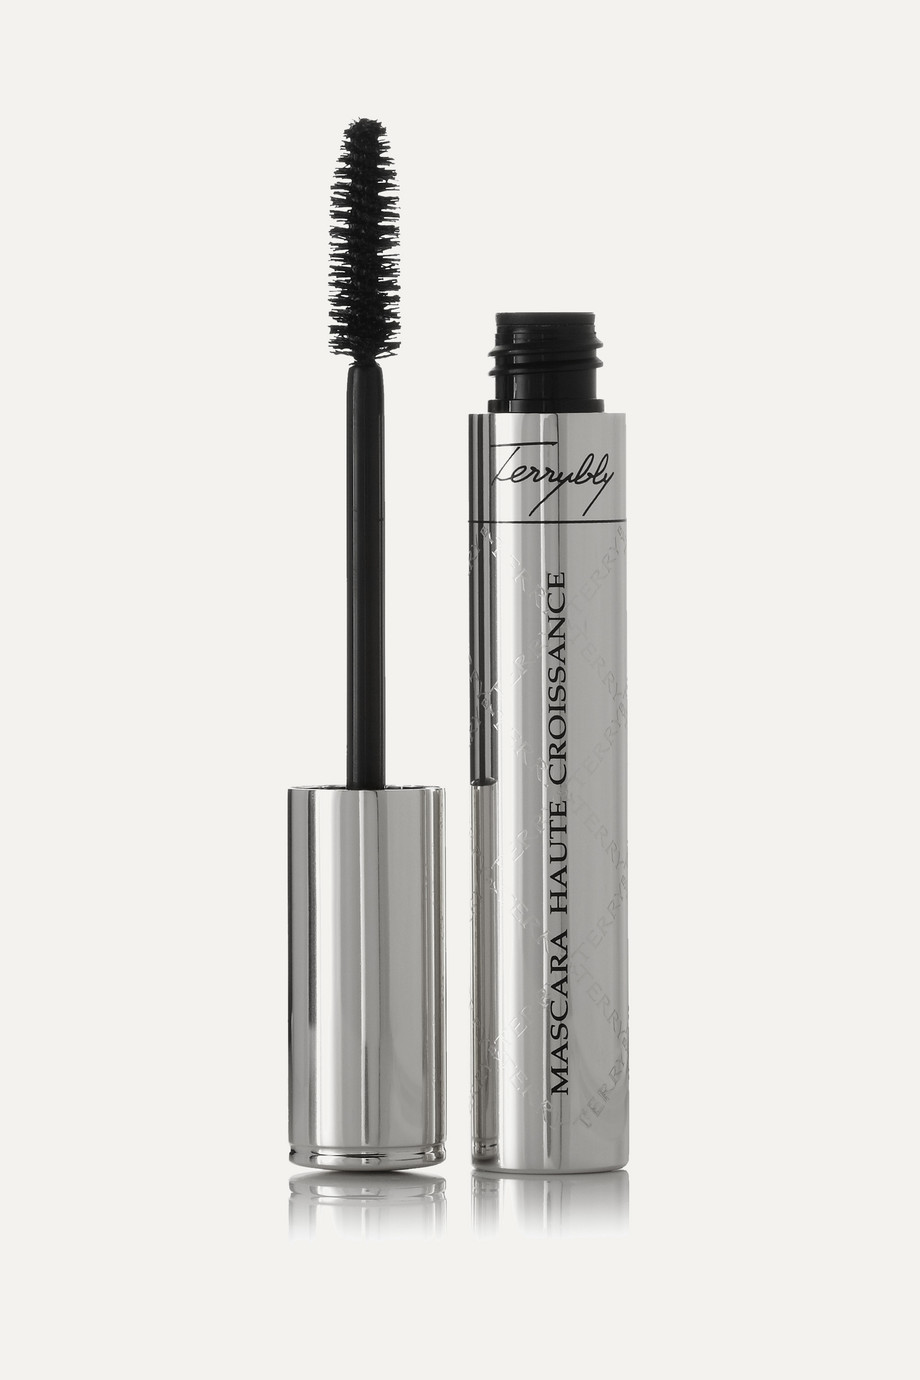 BY TERRY Mascara Terrybly – Black Parti-Pris – Mascara